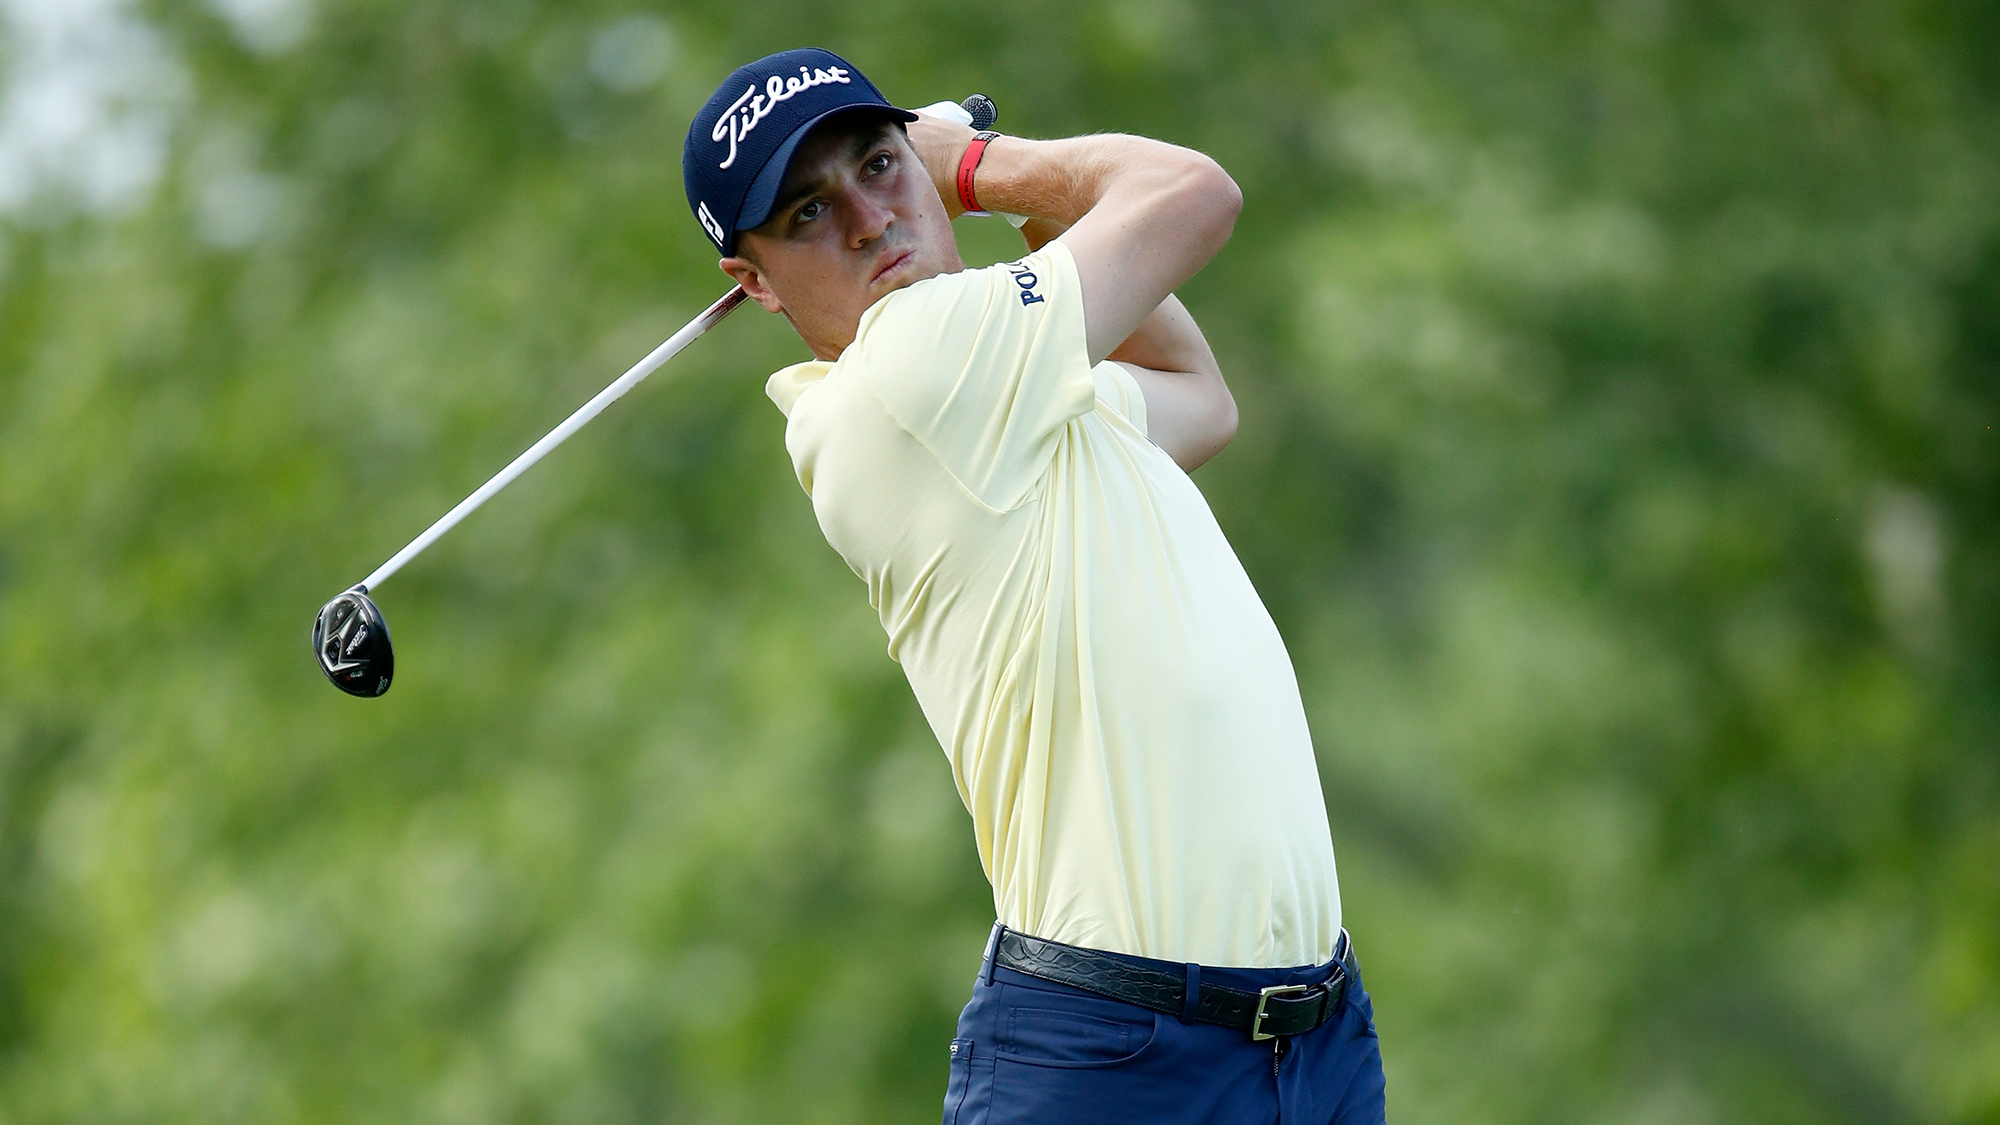 Justin Thomas profile